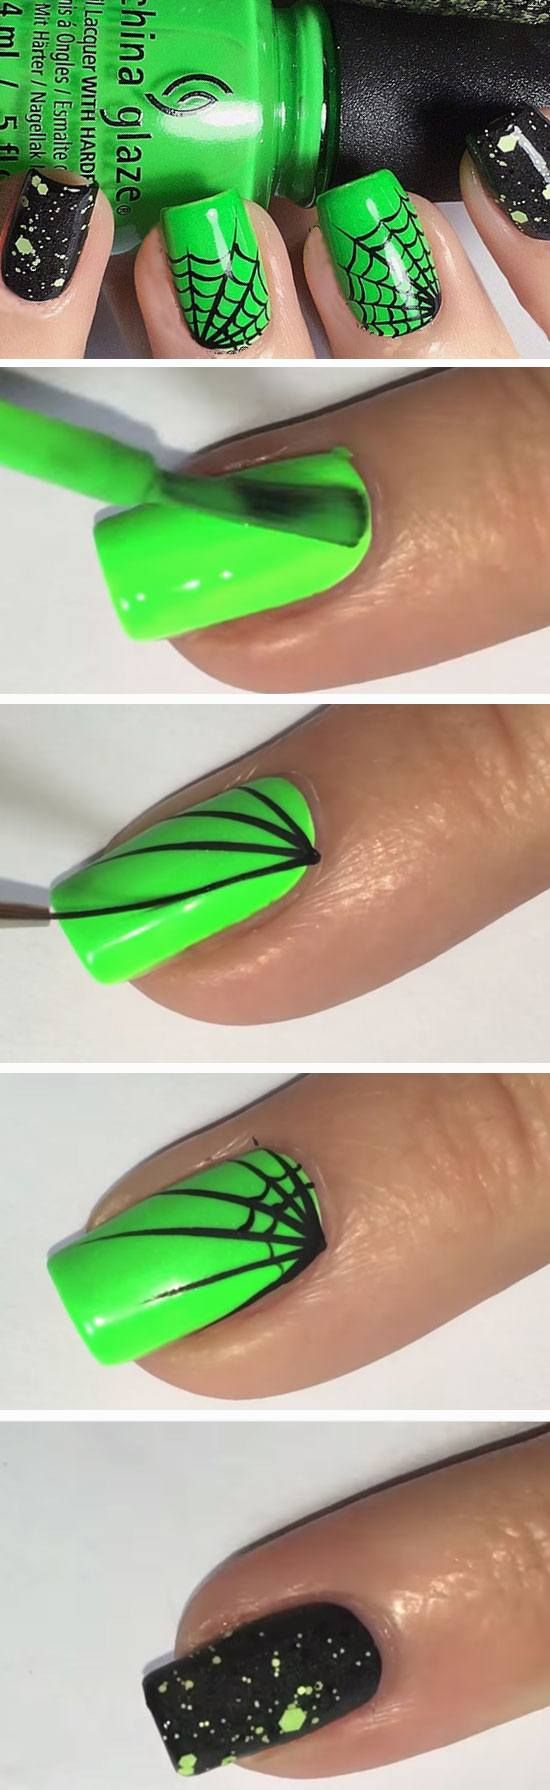 26 Easy Halloween Nail Art Ideas for Teens | Diseños de uñas, Uña ...